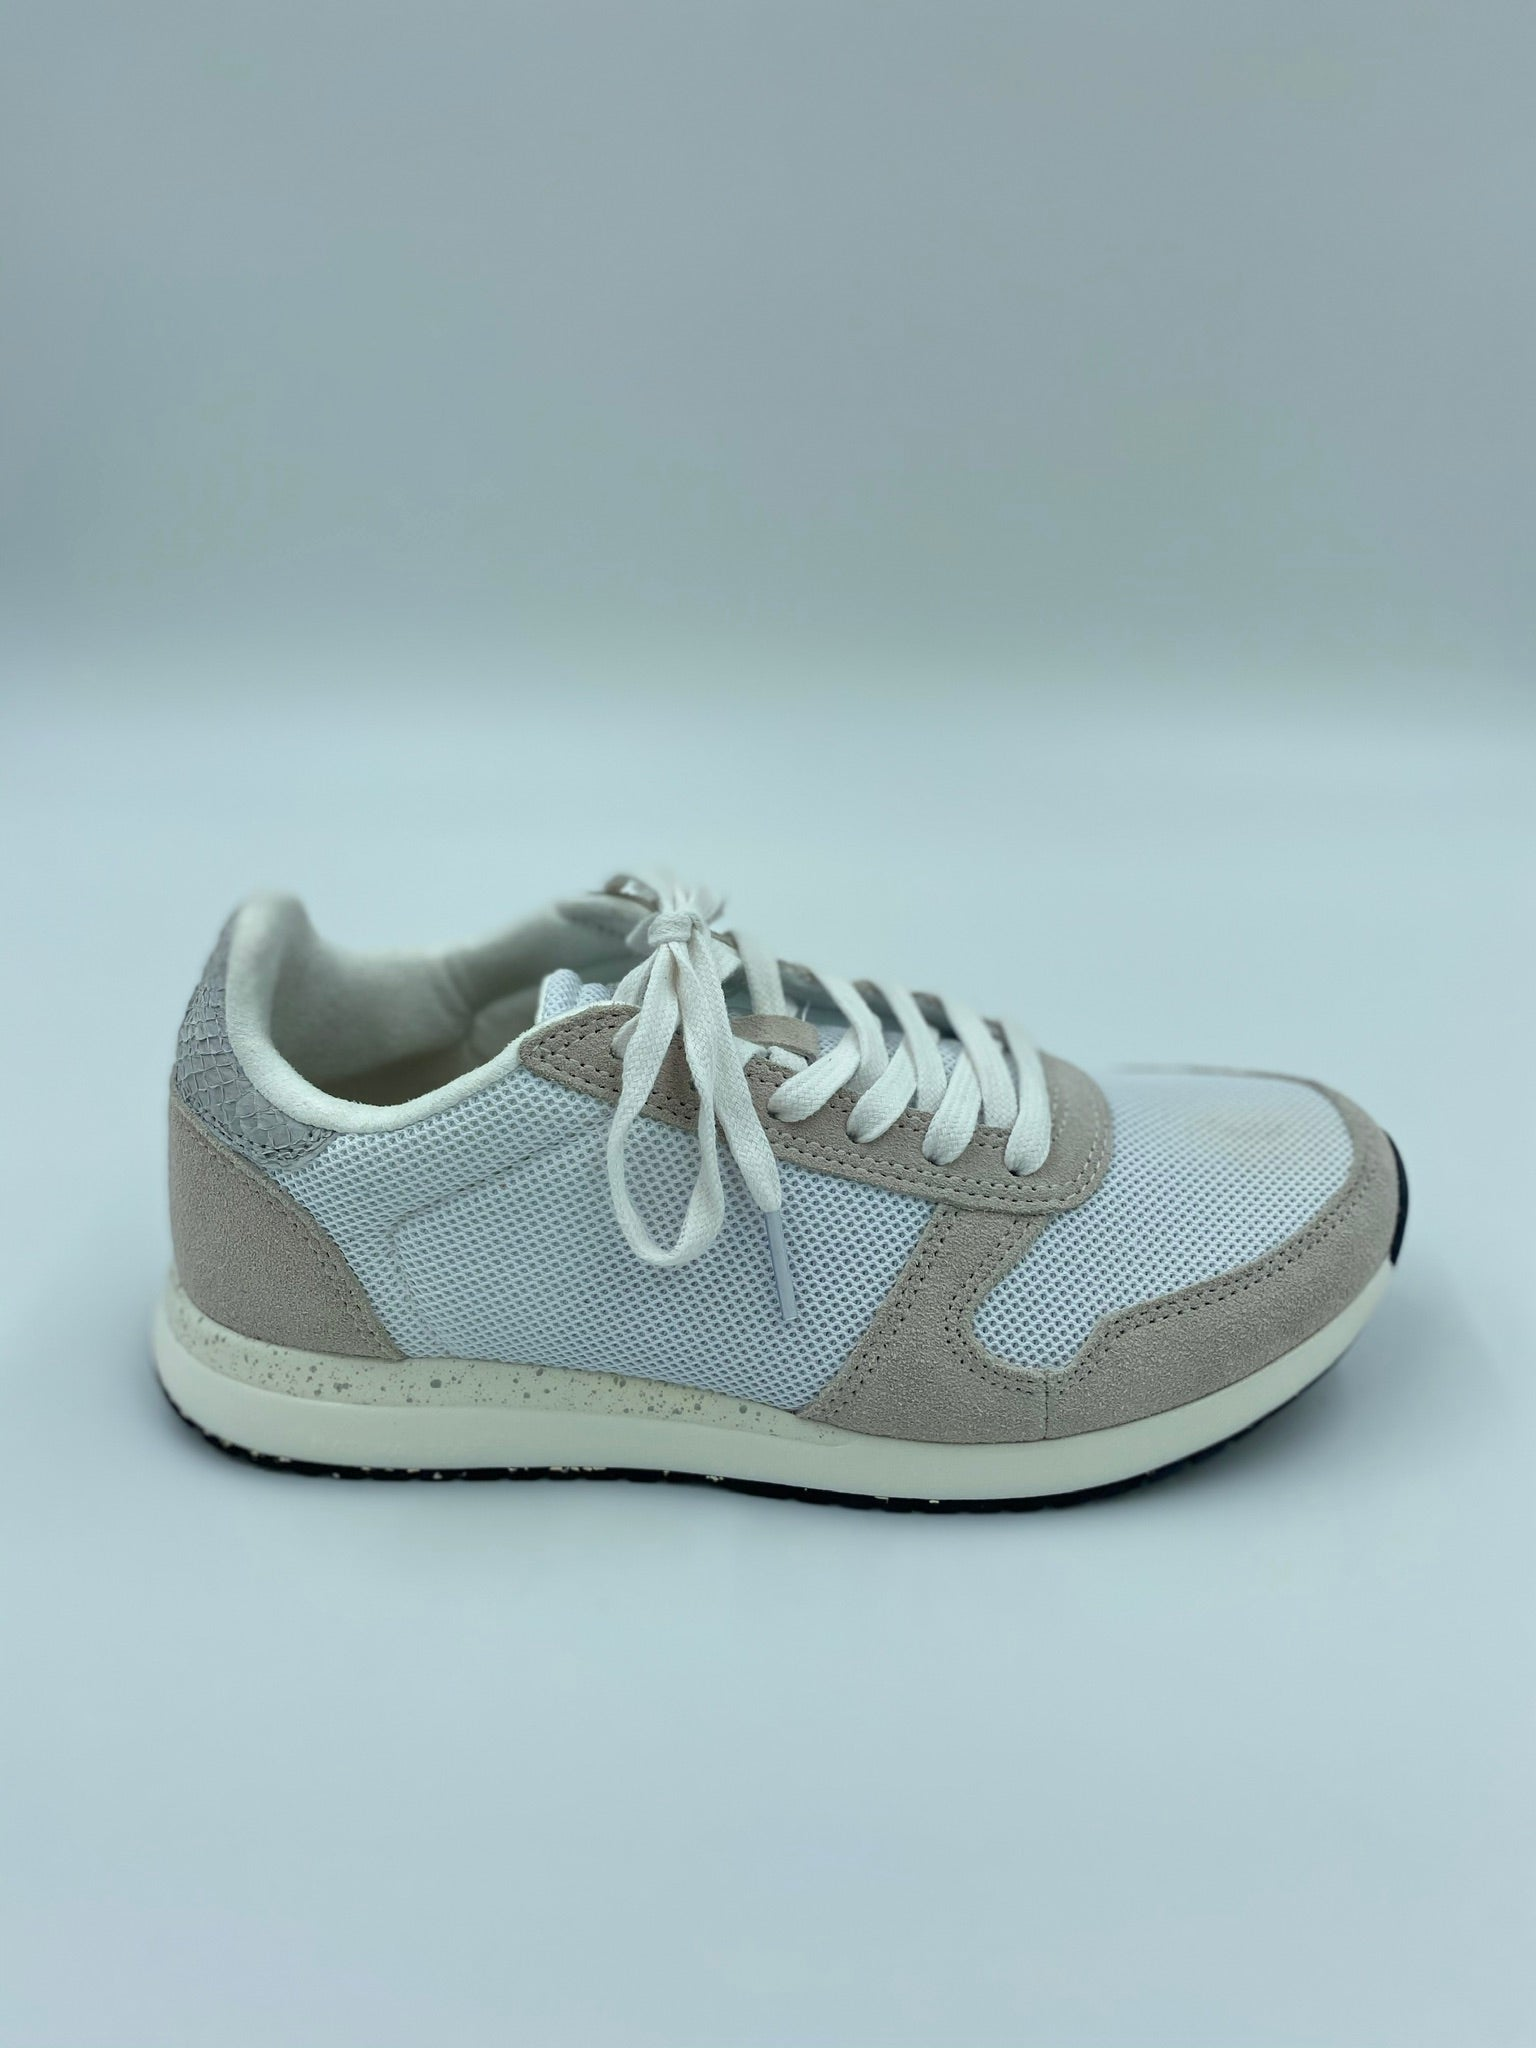 Woden Sneaker Ydun Fifty Bright White